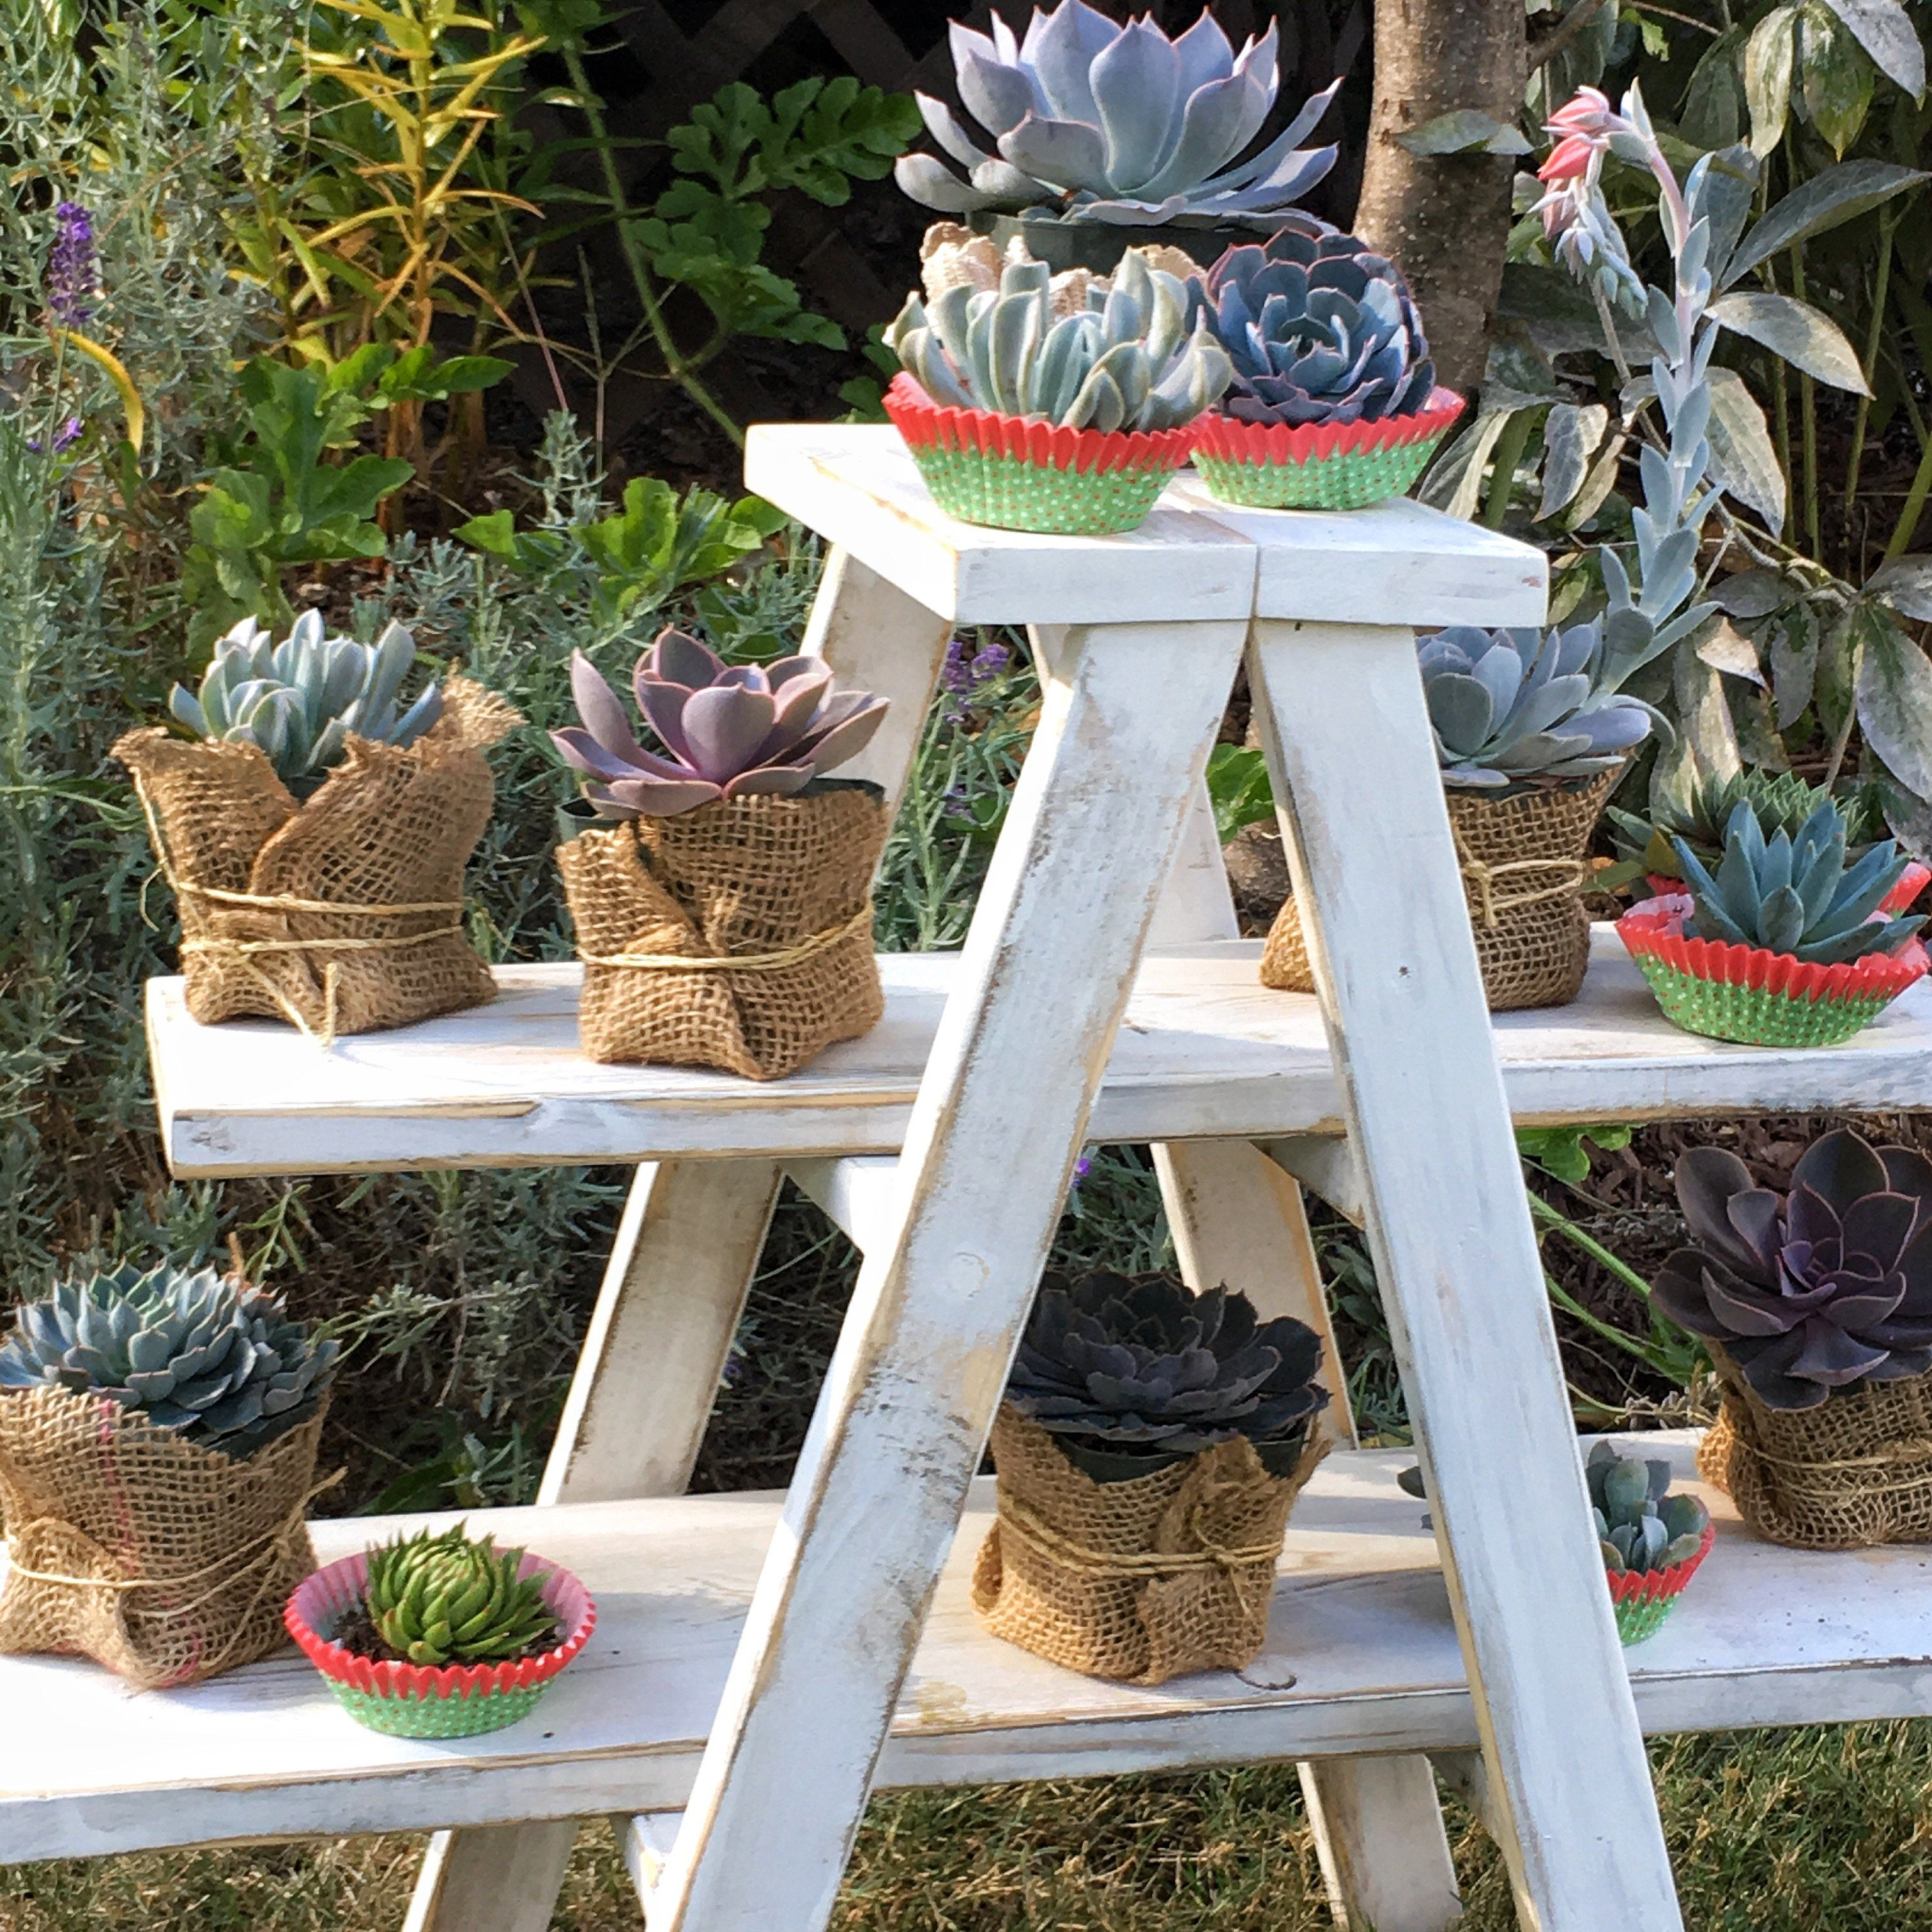 Rustic cupcake stand ladder display rustic cupcakes and products